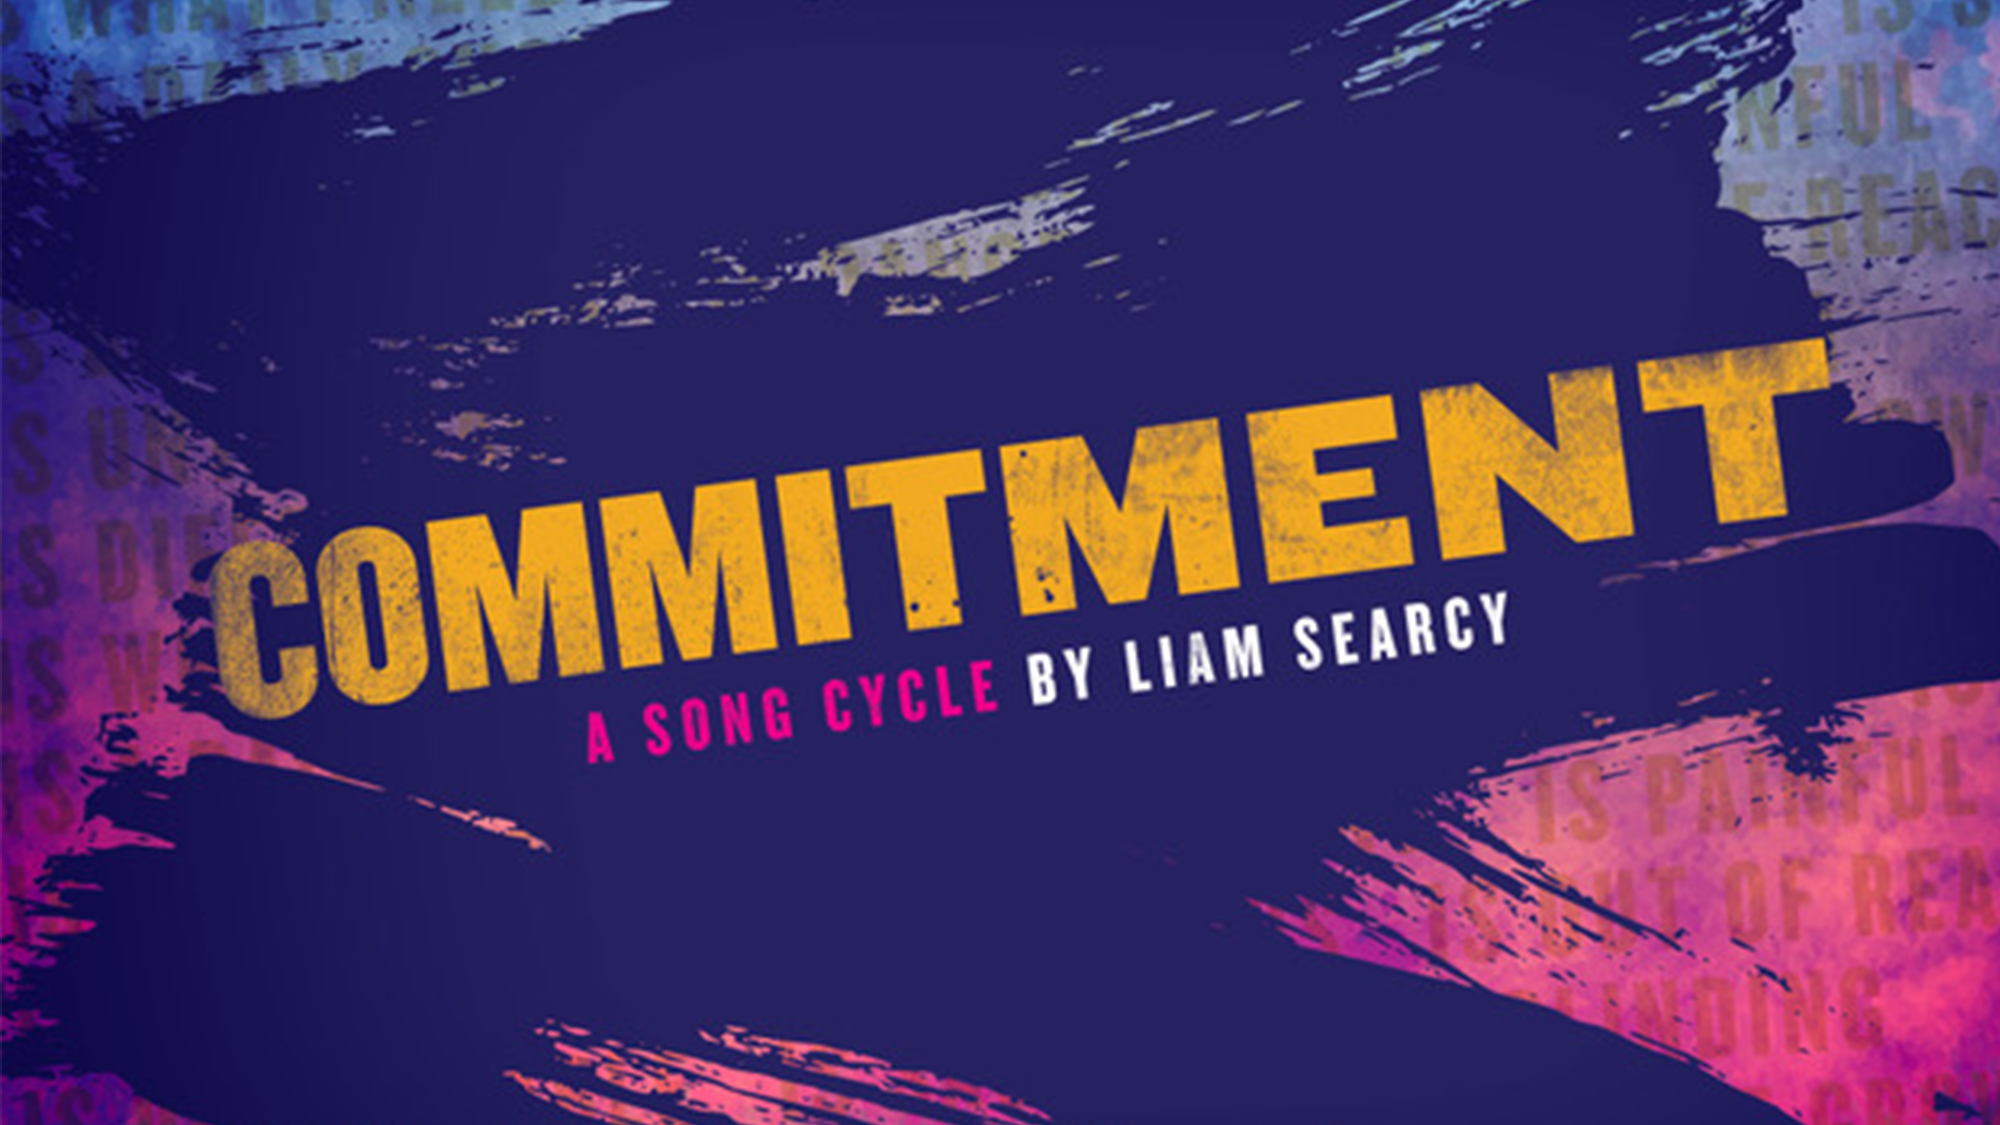 Commitment: A Song Cycle